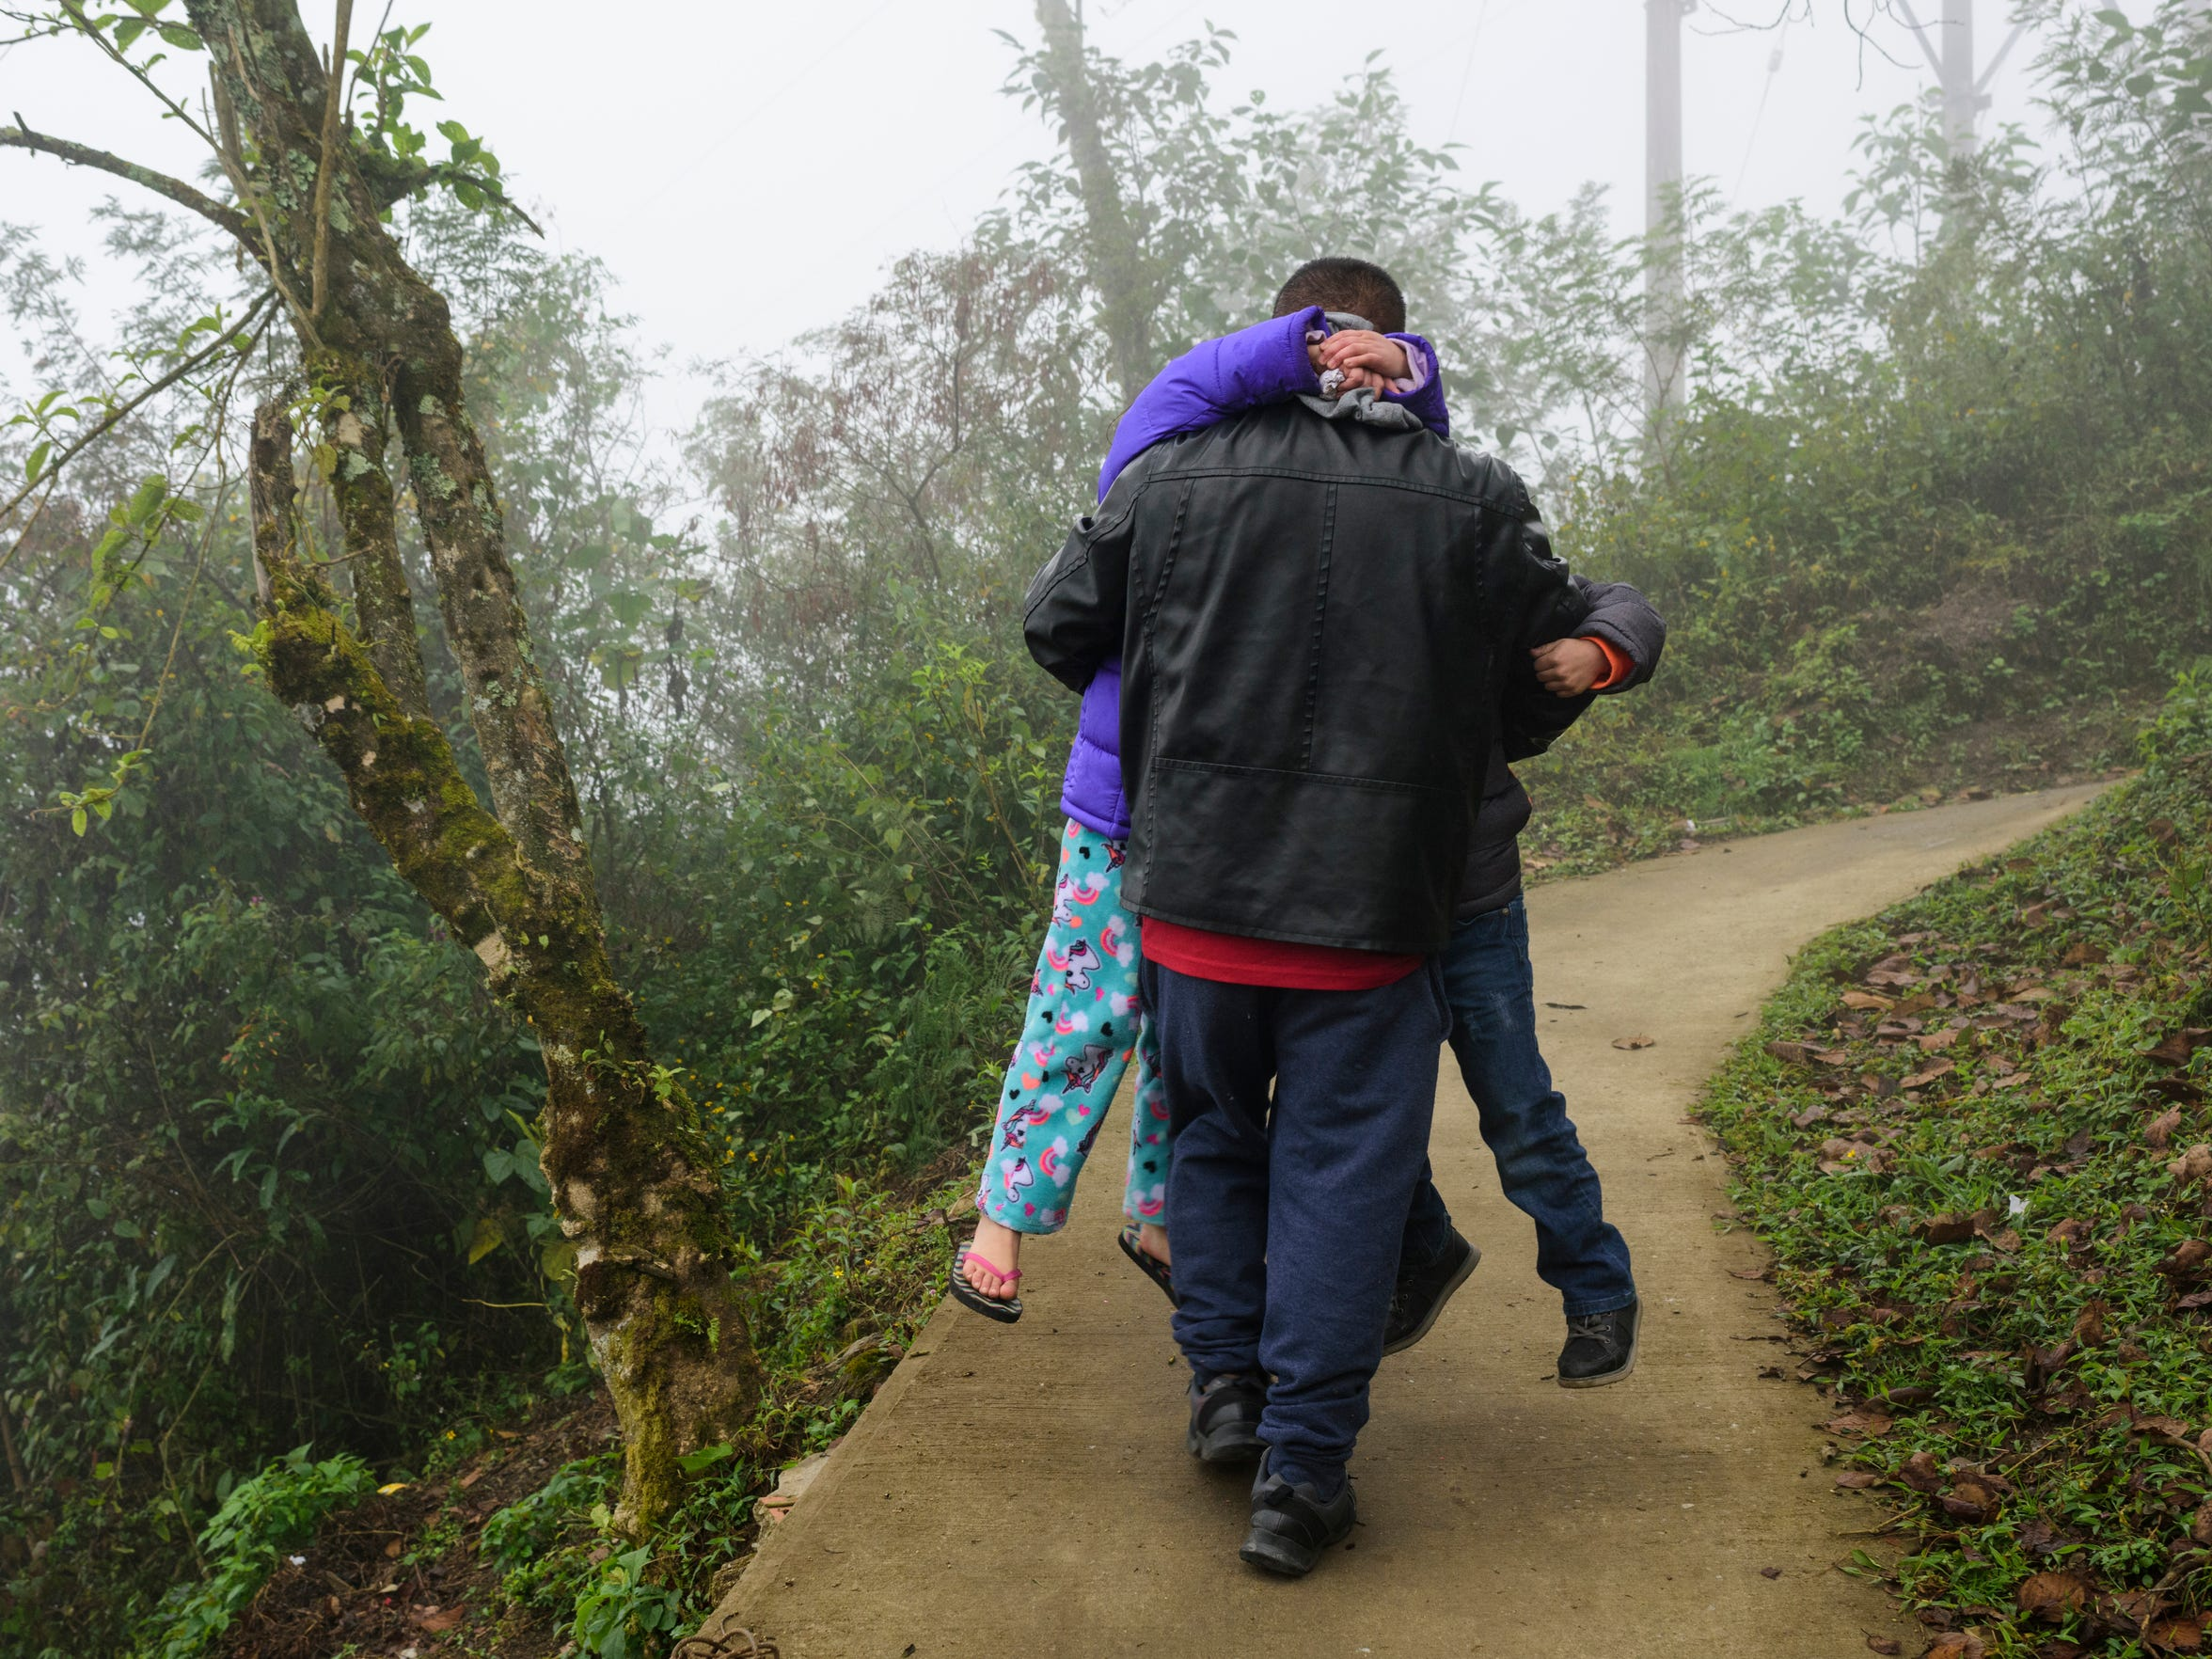 Antonio Cuahua carries his two youngest children Marrissiah Cuahua, 6, and Enrique Cuahua, 5, up the pathway that connects their home to their extended family's house on Jan. 12 in rural Atlanca, a town located about an hour away from Orizaba, Mexico.